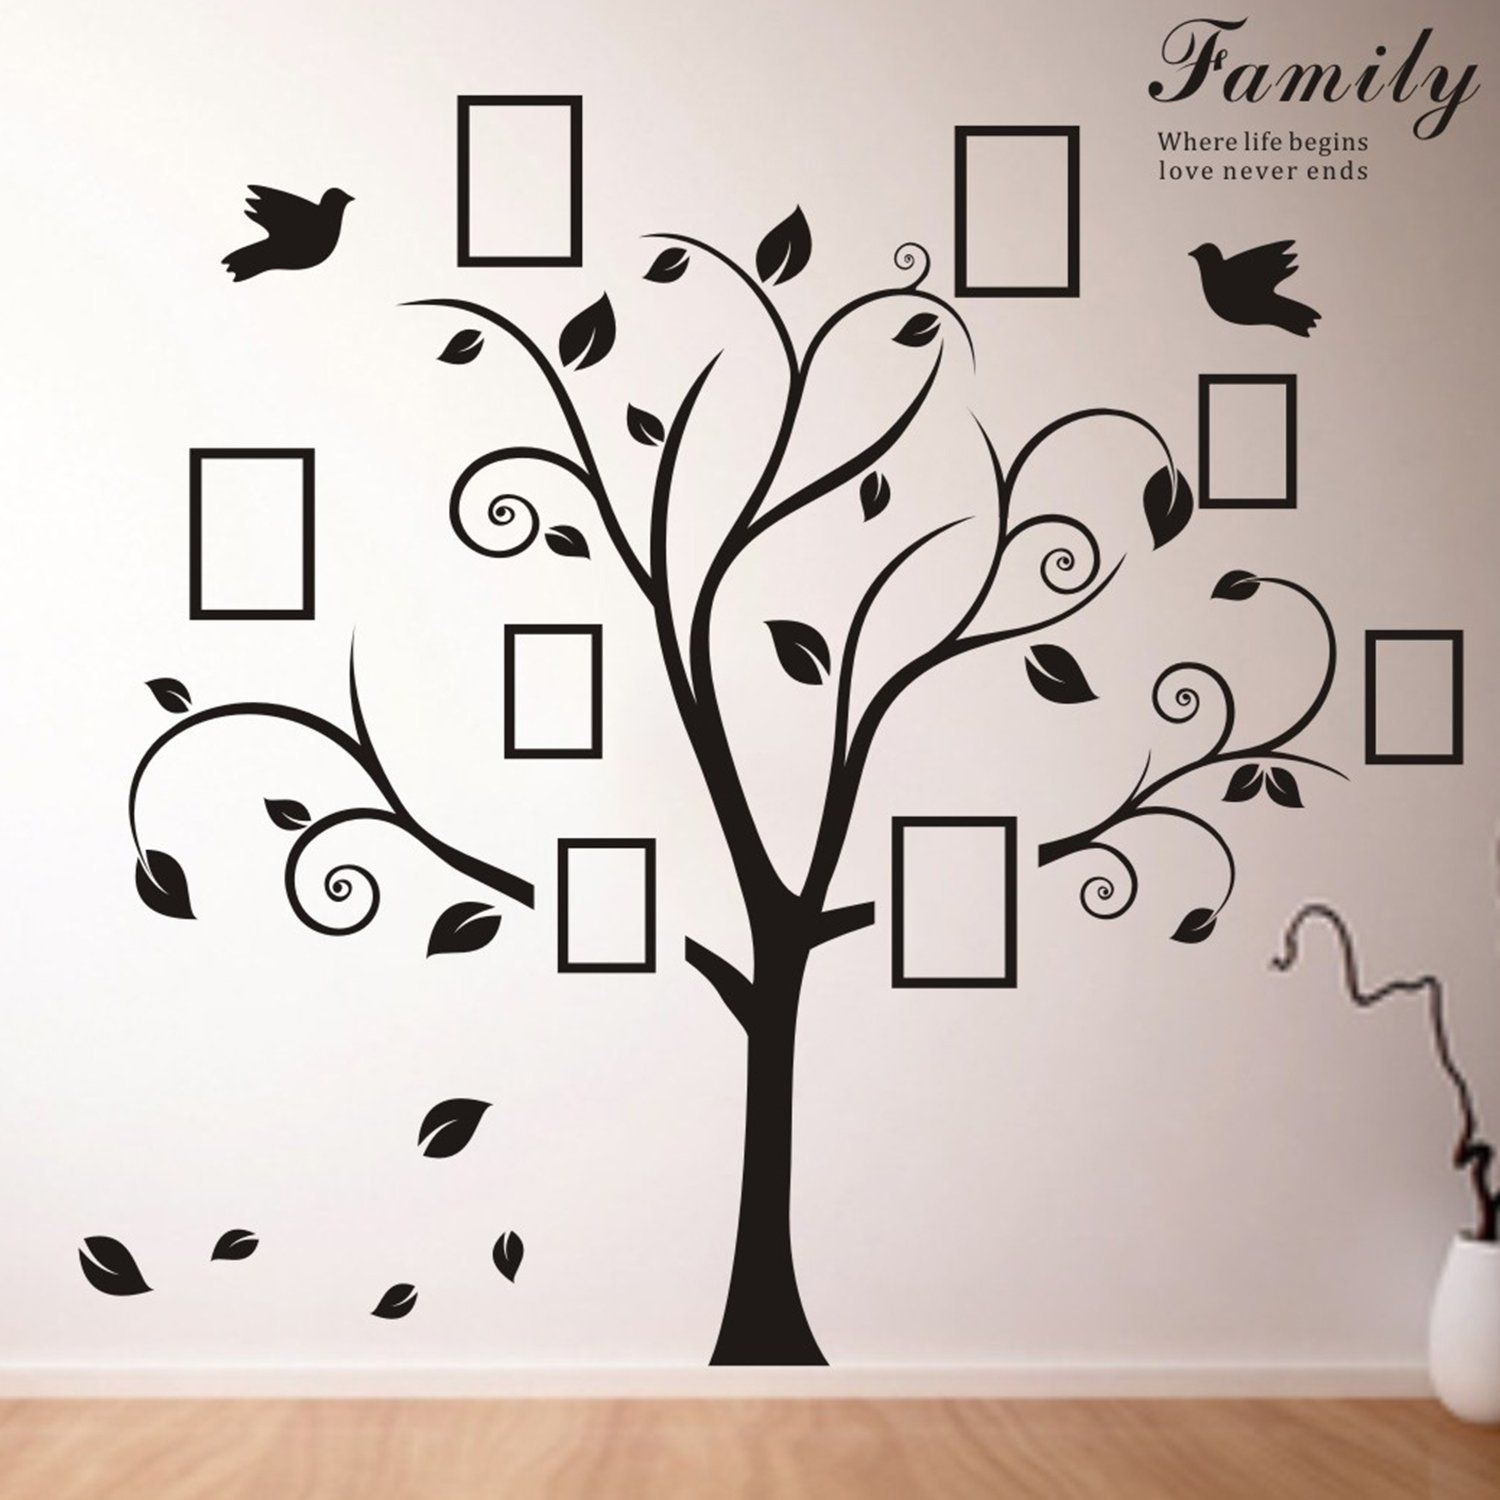 Delmatm huge pvc wall sticker picture frame home decoration delmatm huge pvc wall sticker picture frame home decoration memory family tree photo amipublicfo Image collections